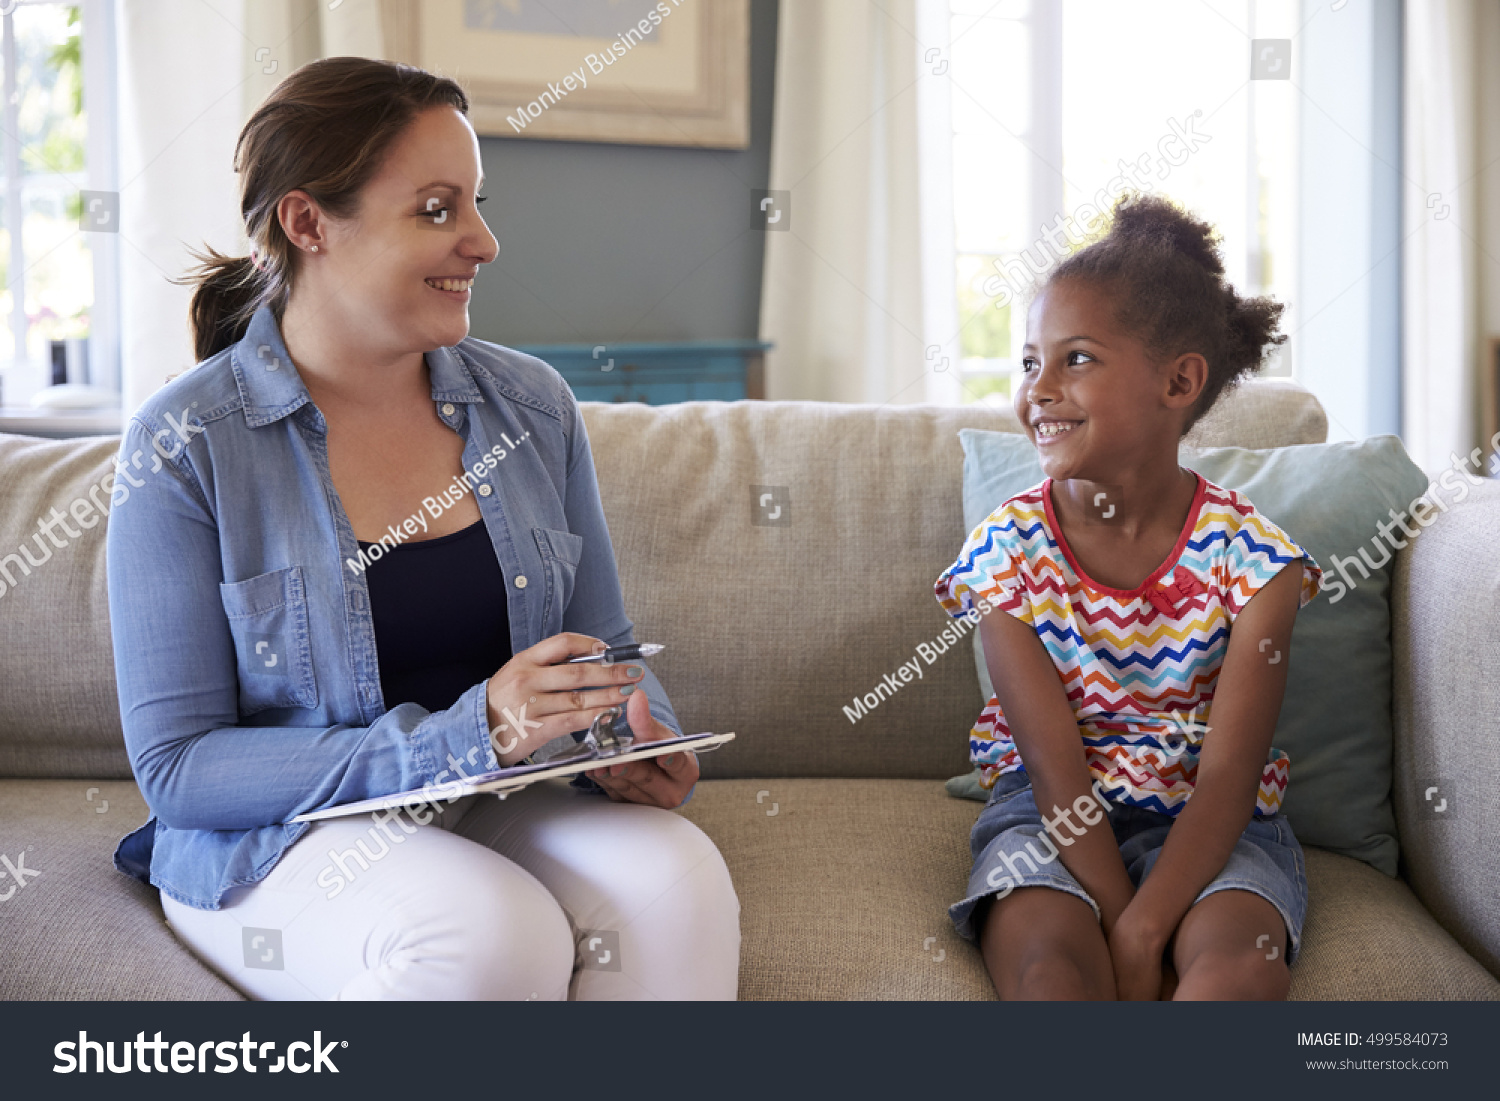 Young Girl Talking Counselor Home Stock Photo 499584073 ...